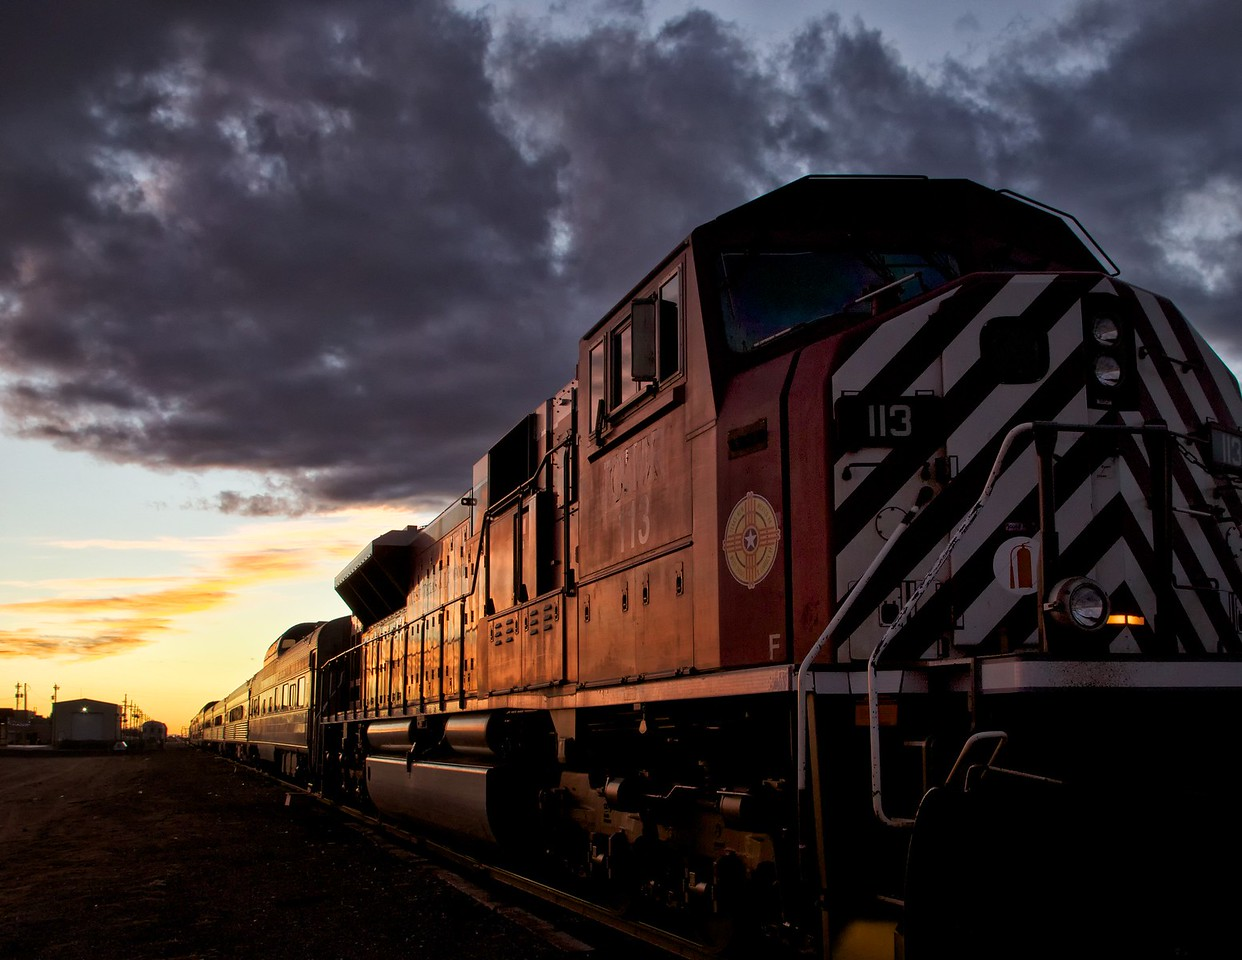 Last West Texas sunset of 2012. This is a passenger train and some very old cars are visible.